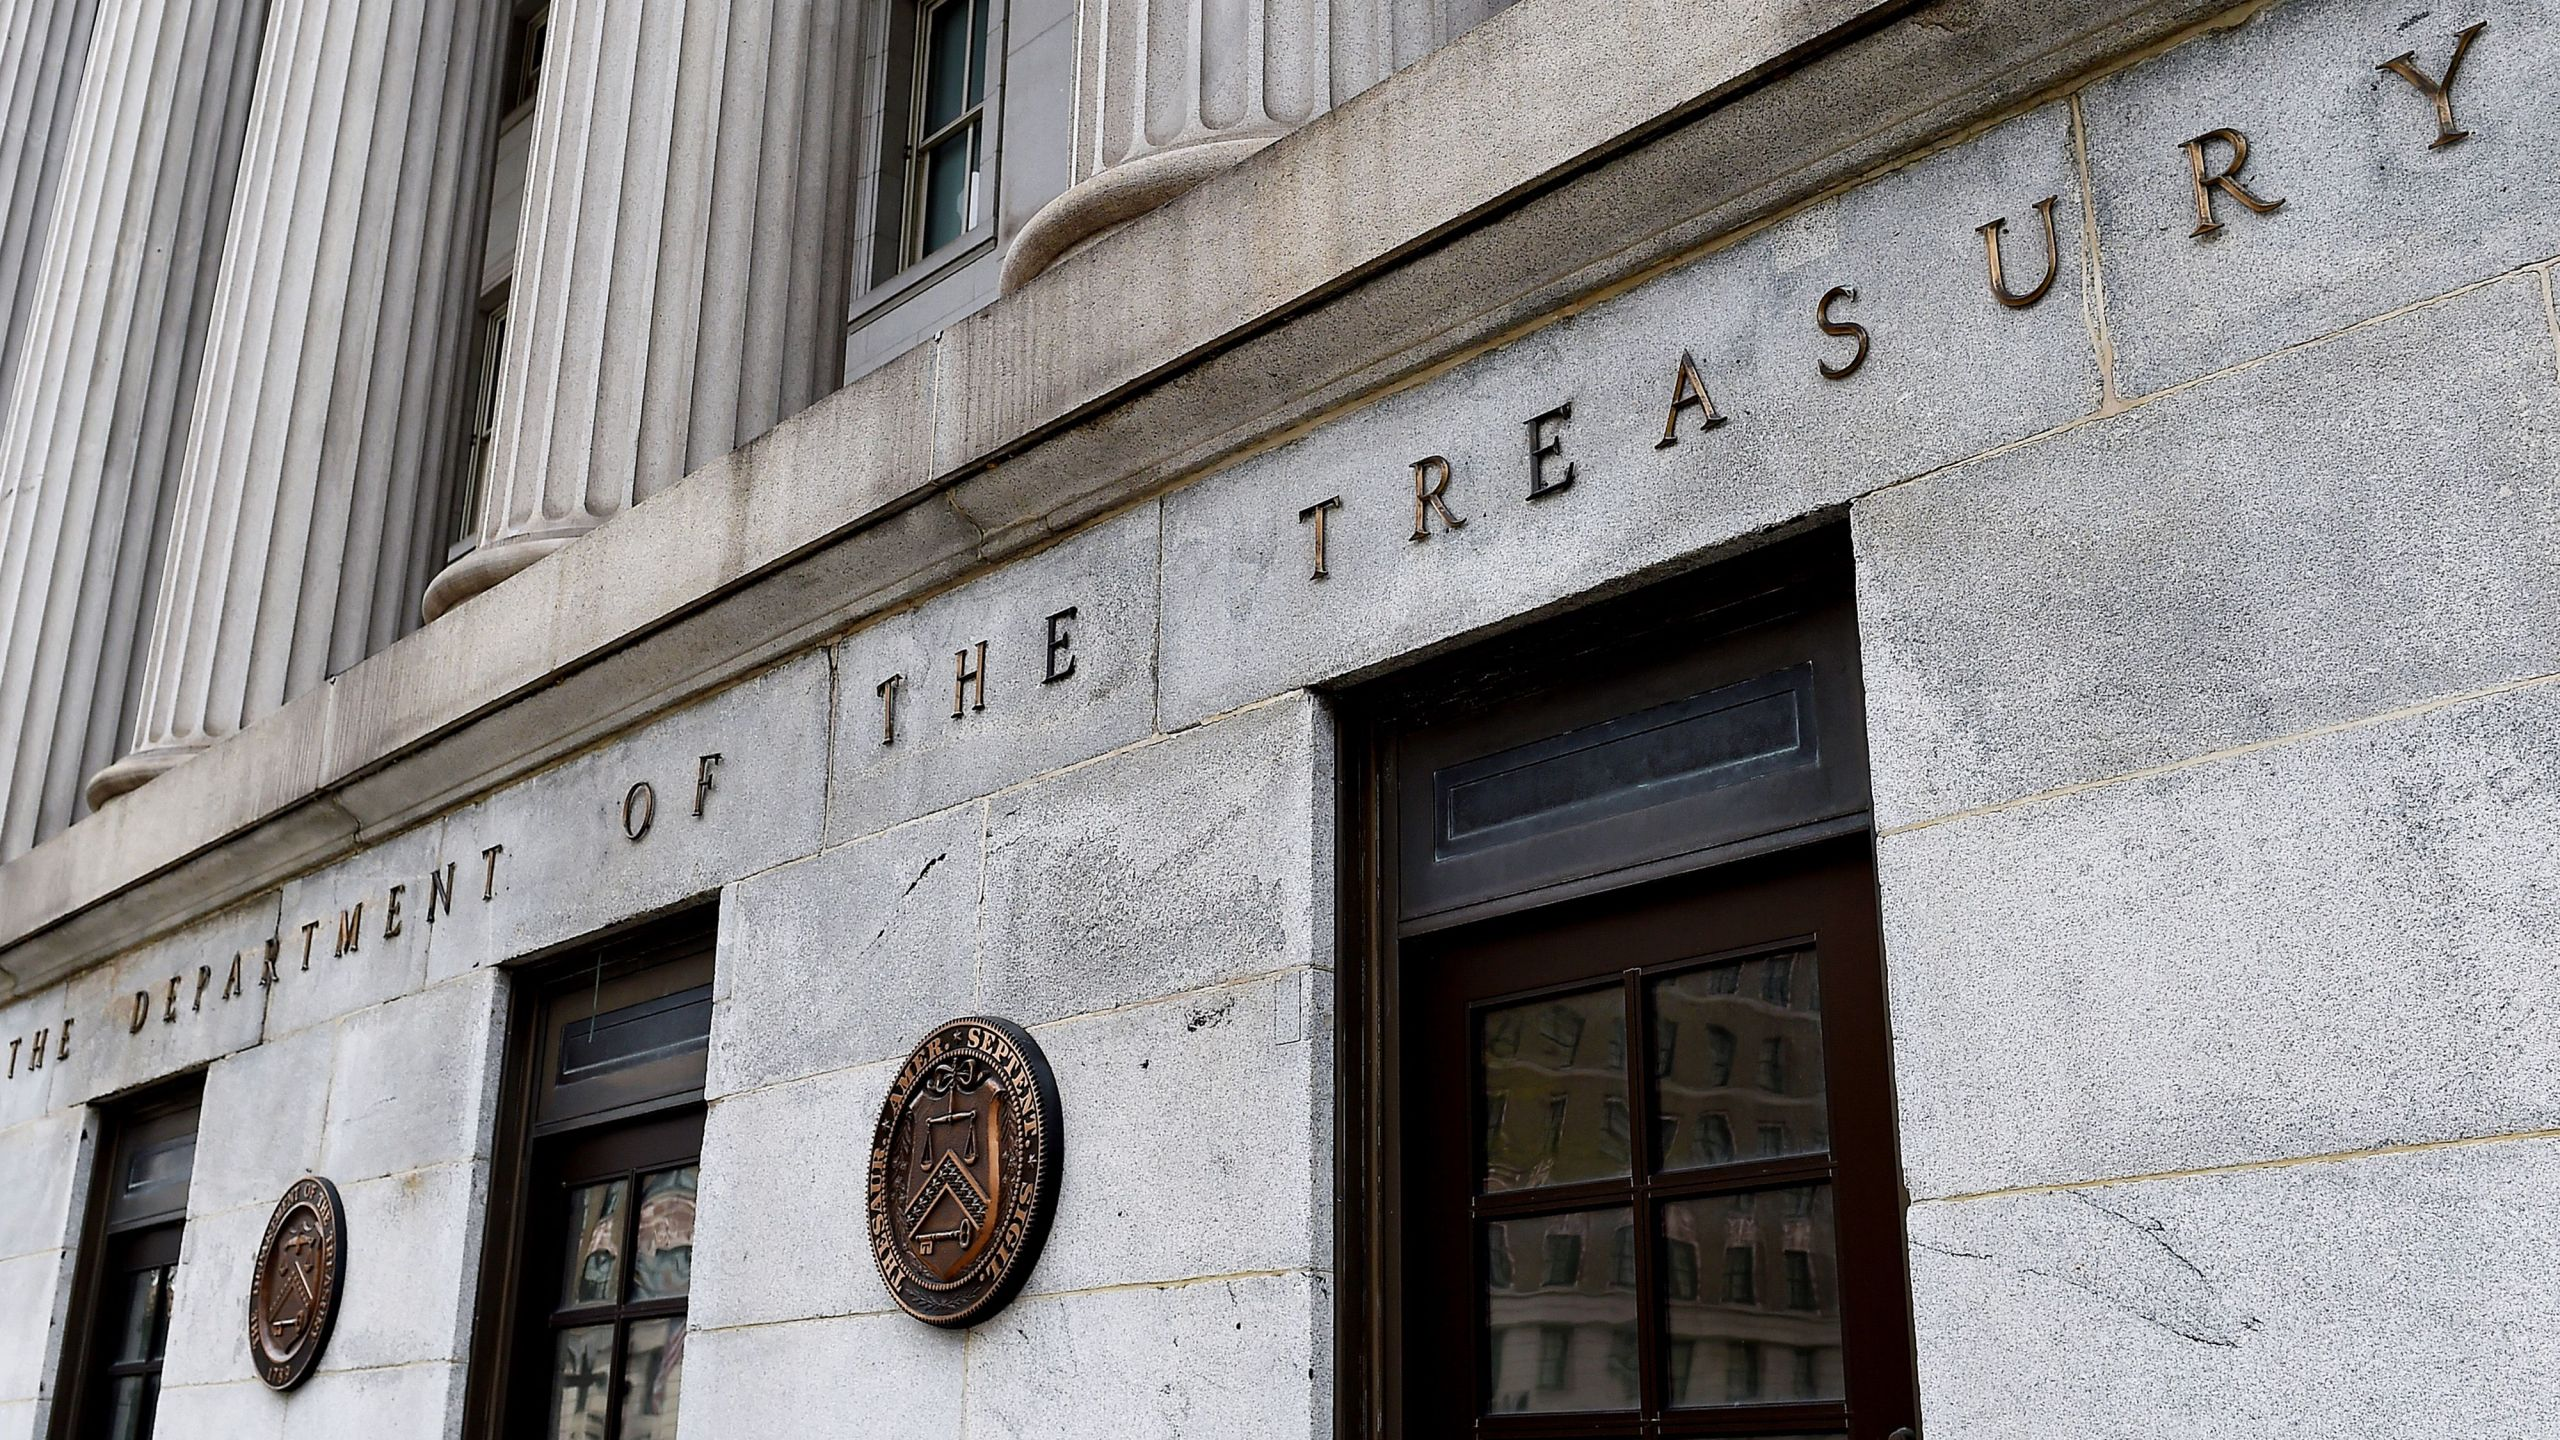 An exterior view of the building of the U.S. Department of the Treasury is seen on March 27, 2020 in Washington, D.C. (OLIVIER DOULIERY/AFP via Getty Images)